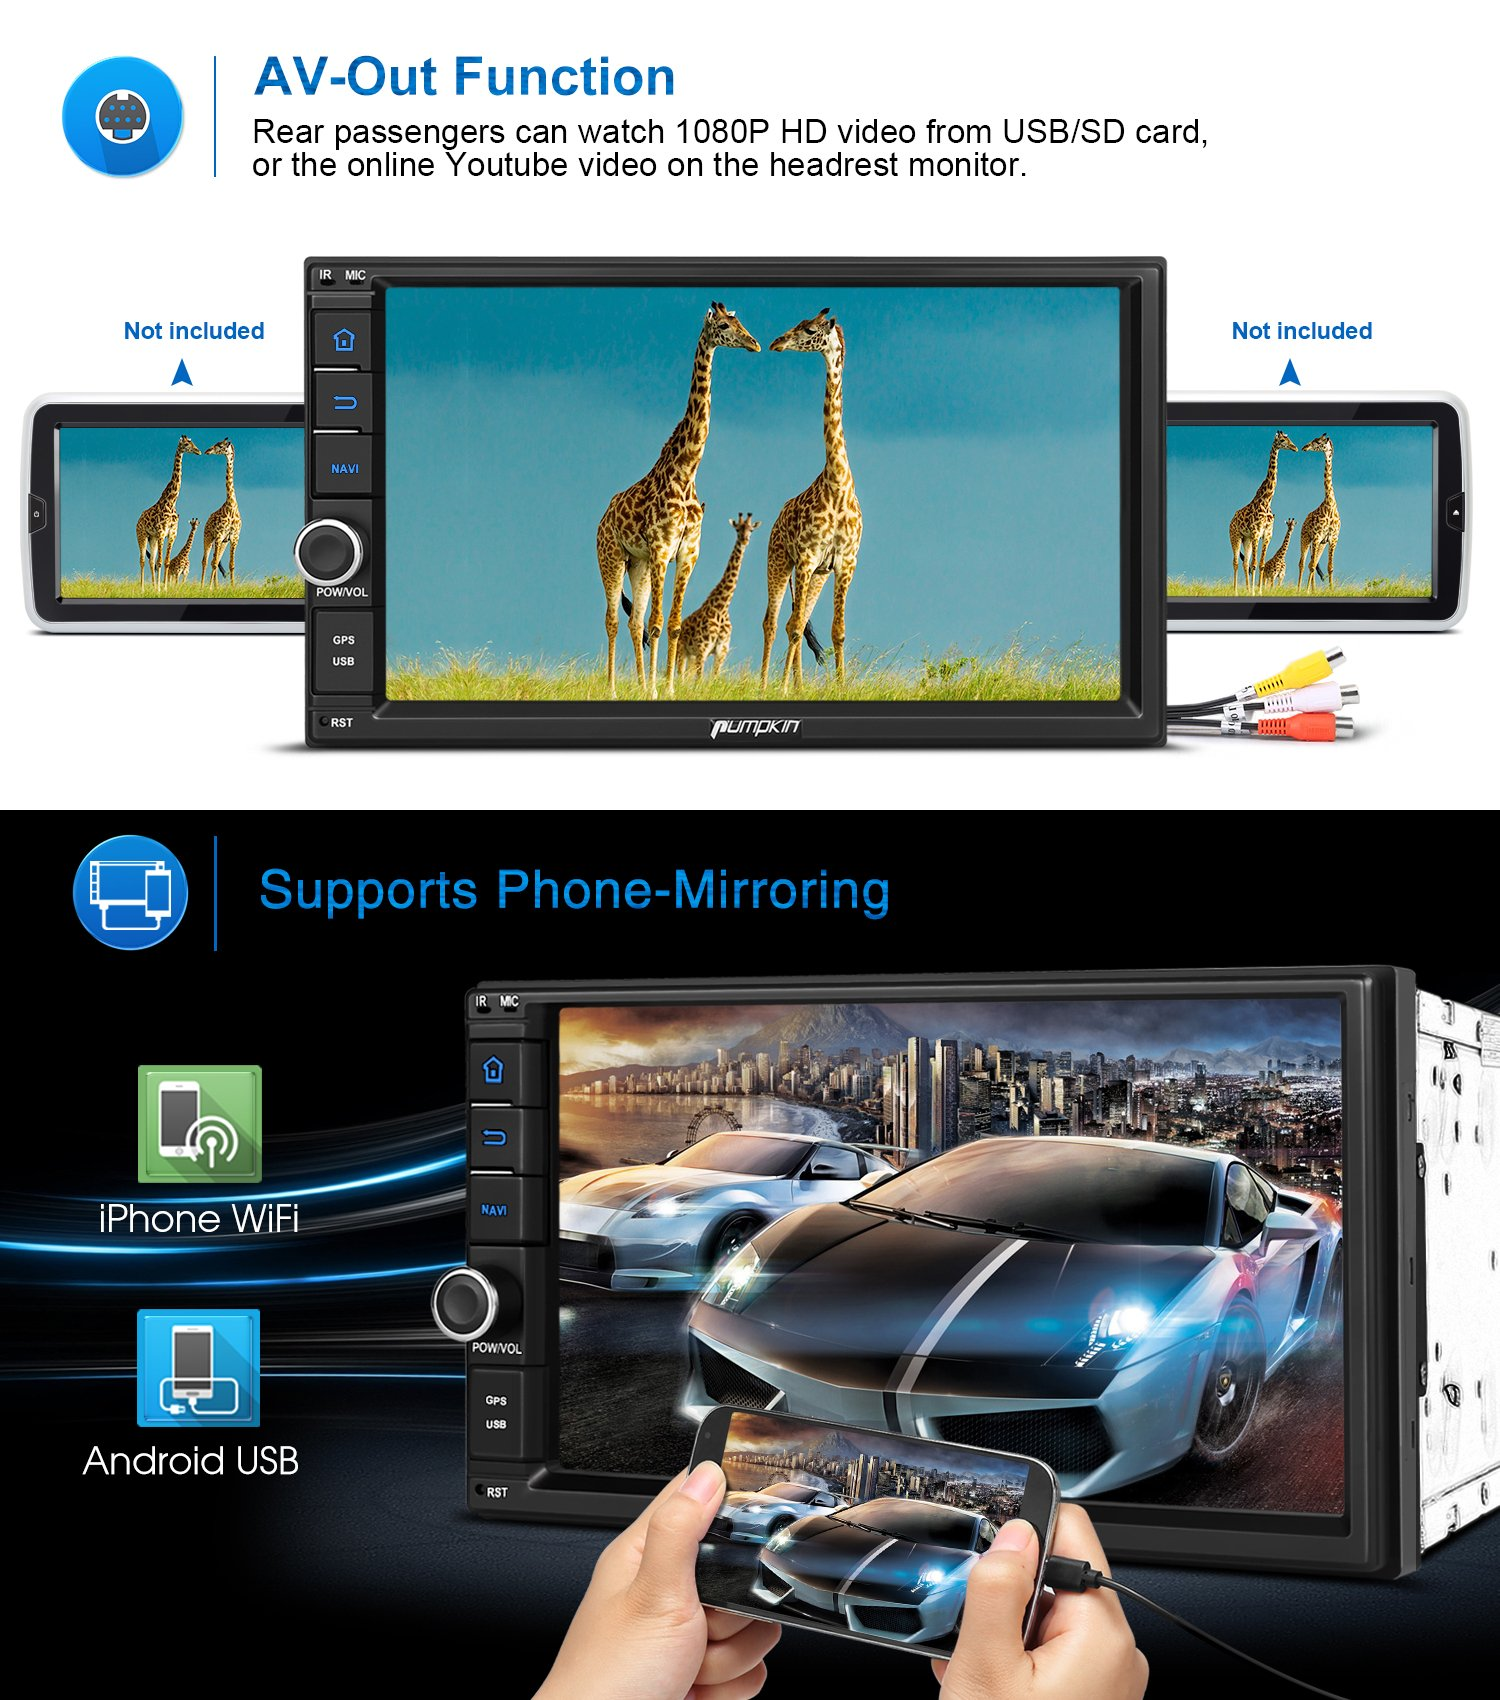 2GB 32GB Android 7.1 Car Stereo - Double Din Bluetooth 4.0 Radio - Support Fast Boot, GPS Navigation, USB/SD, 3G WIFI, Mirror Link, Backup Camera, AV-Out, OBD2, DVR, Subwoofer by PUMPKIN (Image #4)